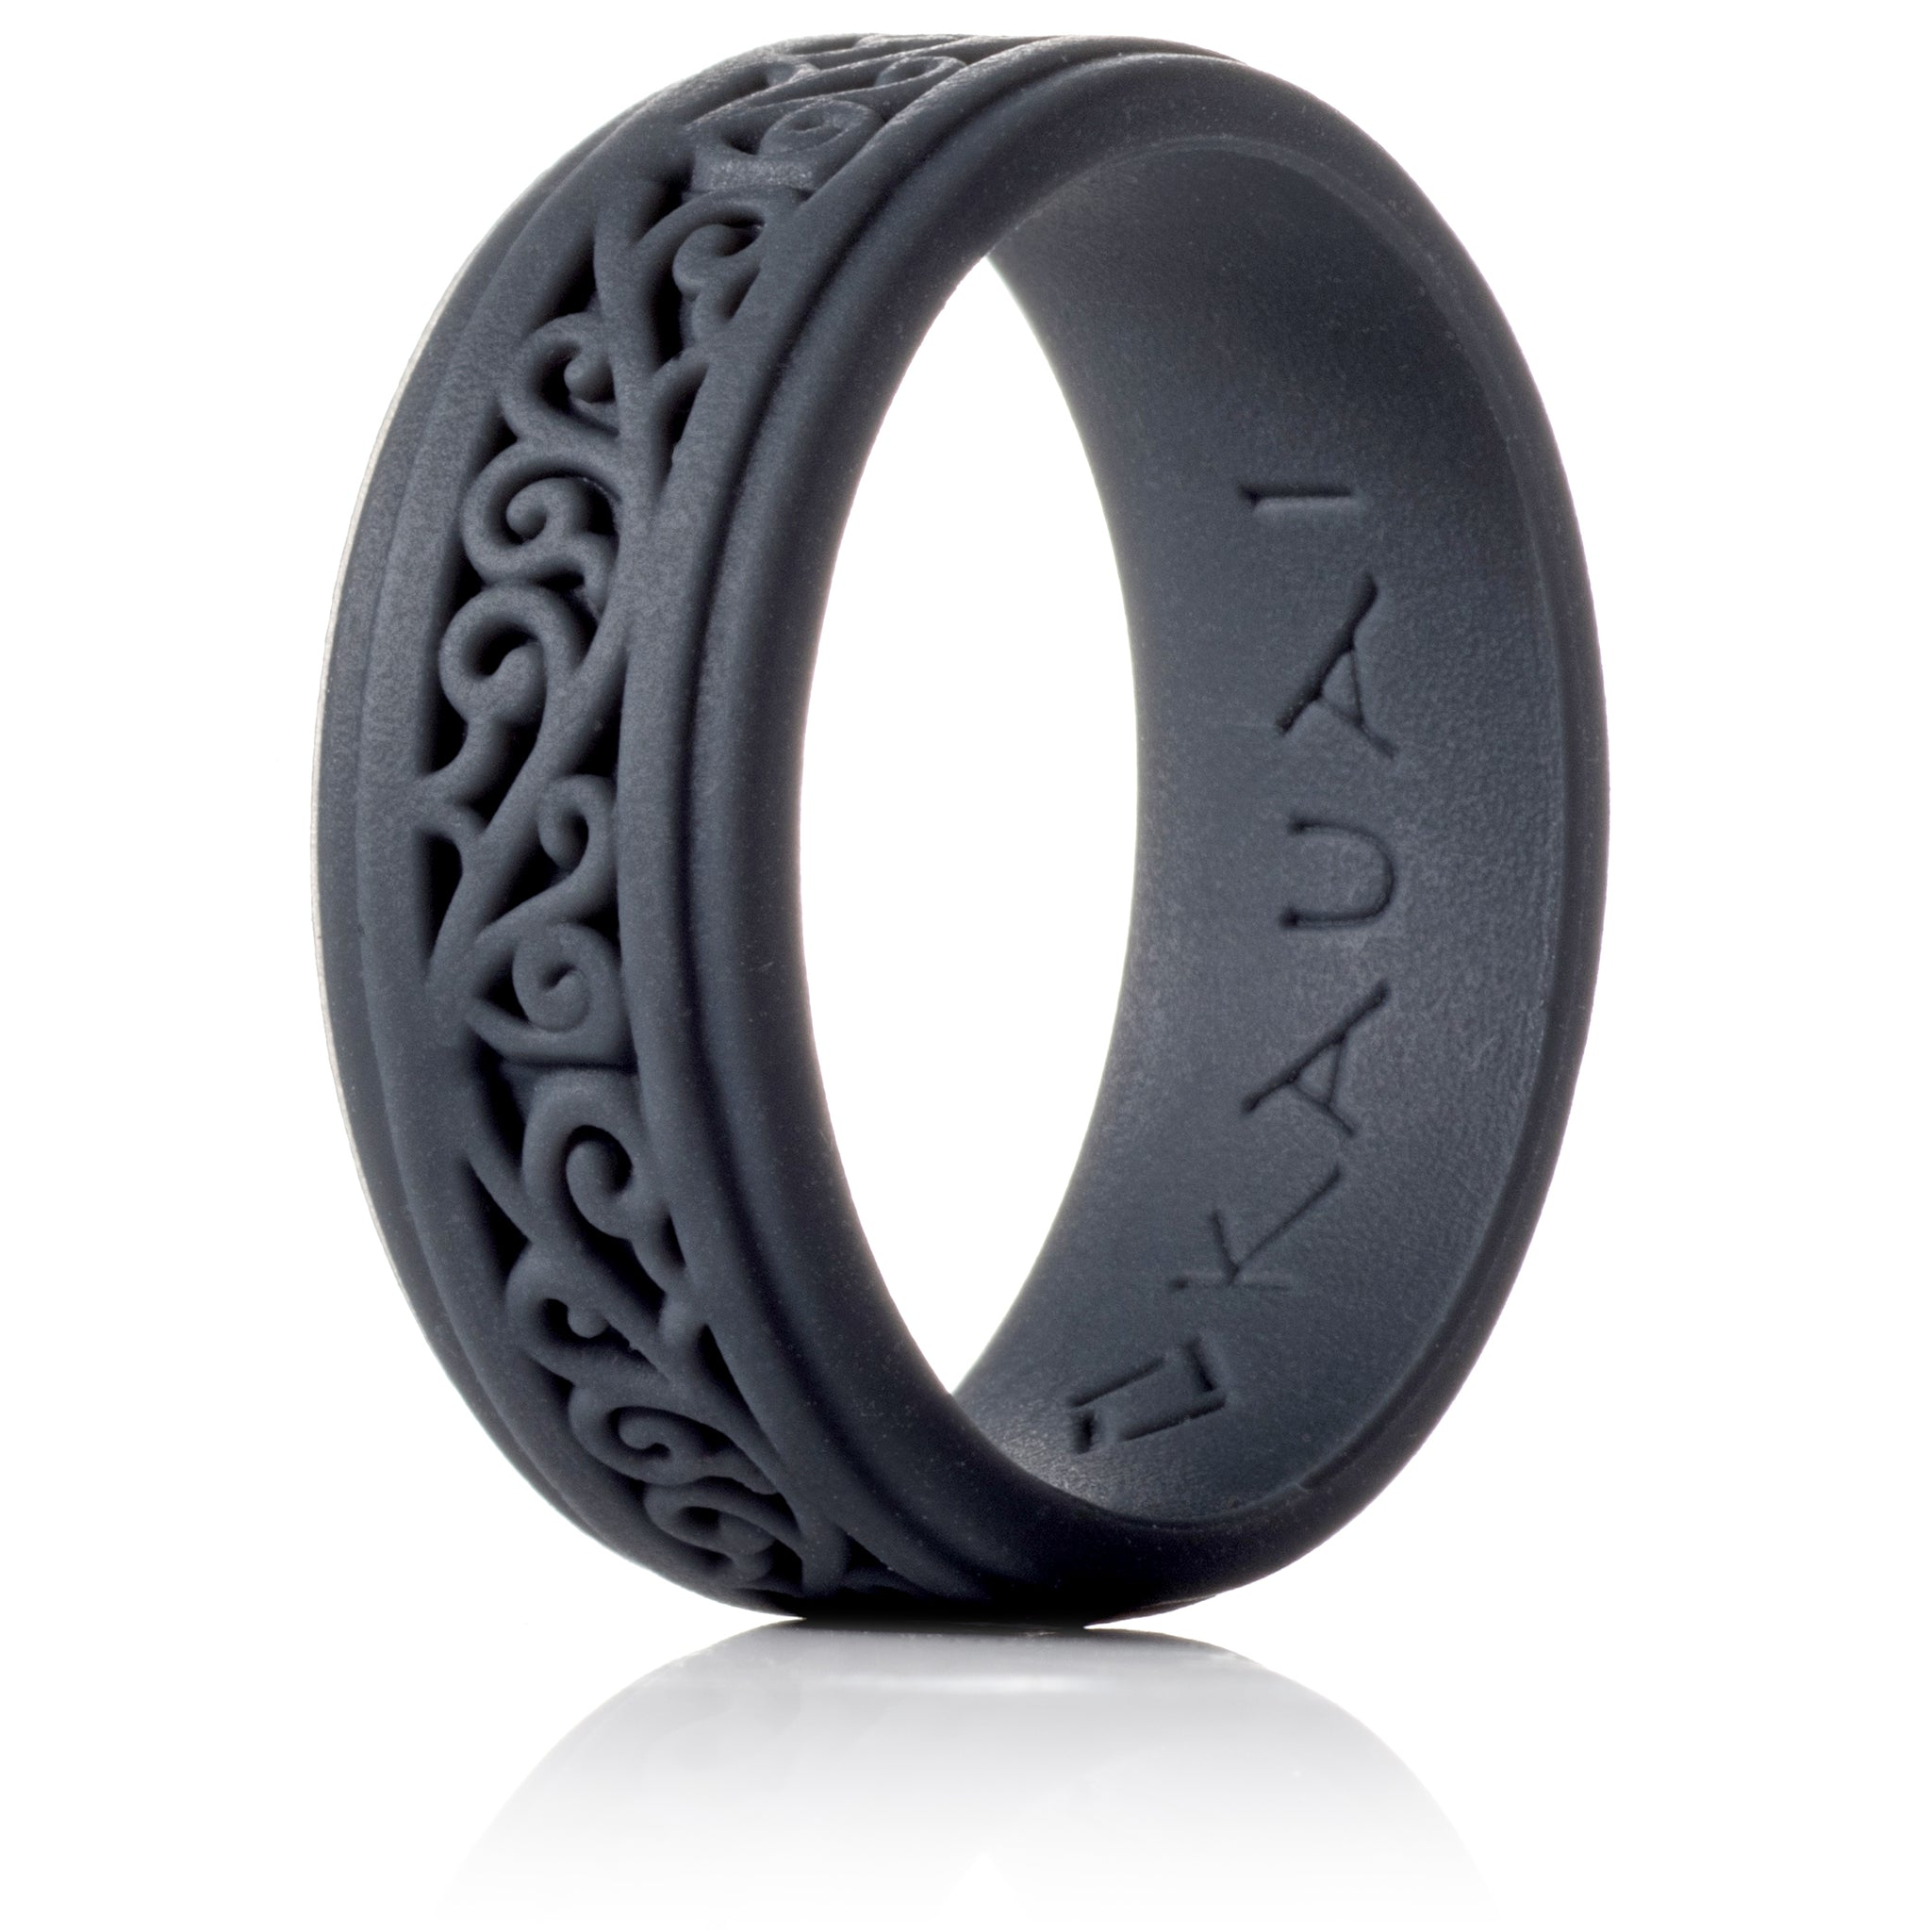 Silicone Wedding Ring.Silicone Wedding Rings Kauai Innovations